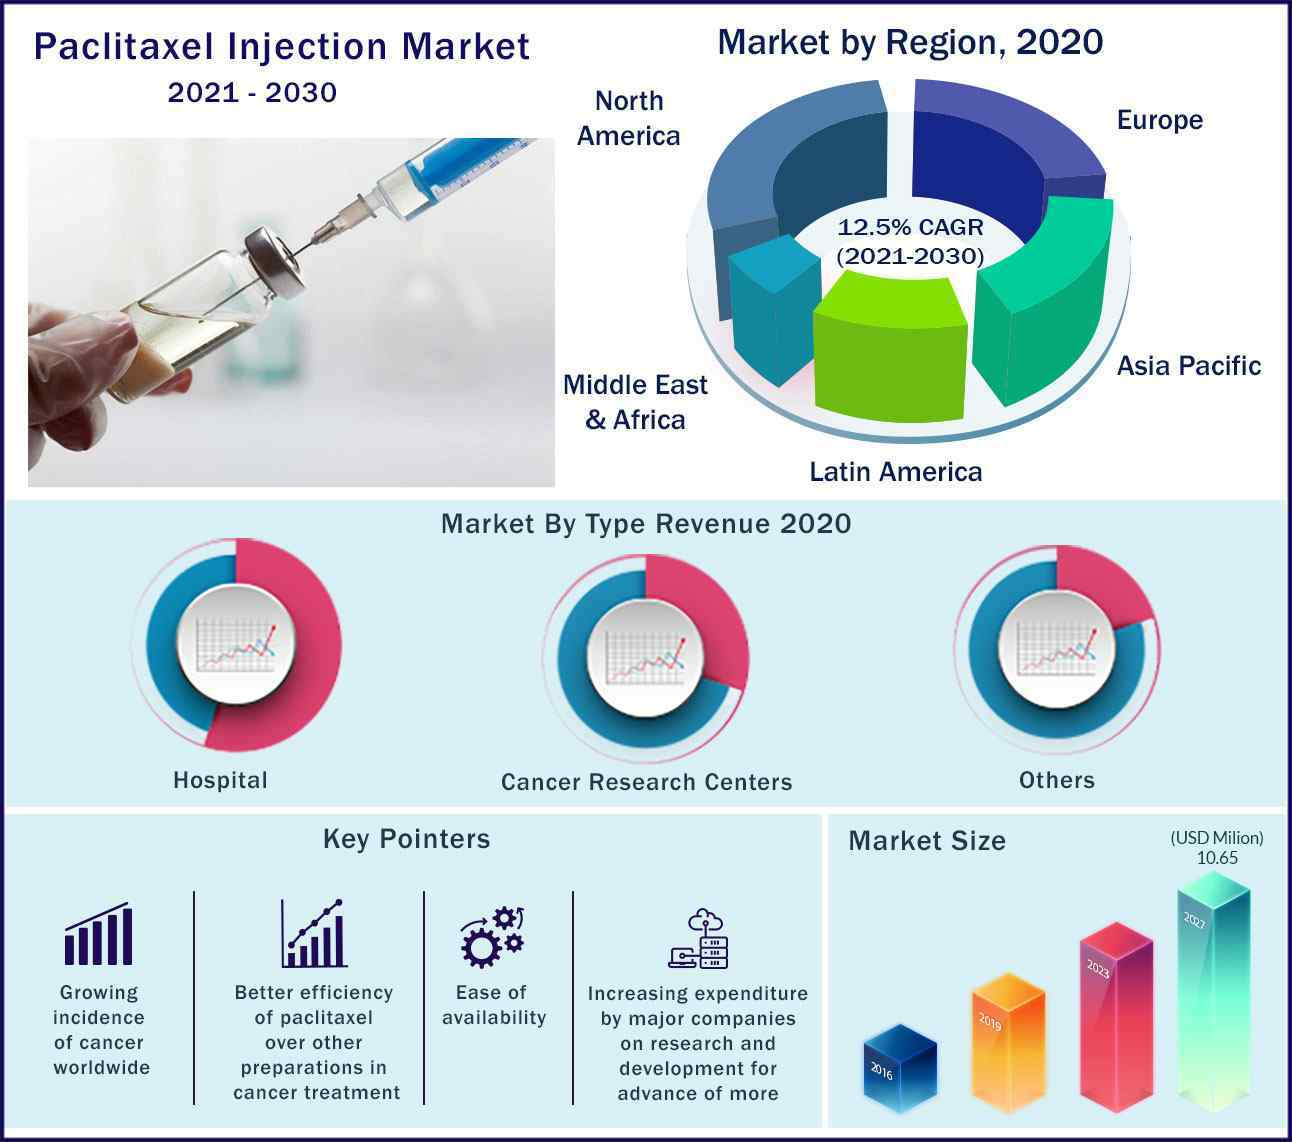 Global Paclitaxel Injection Market 2021-2030